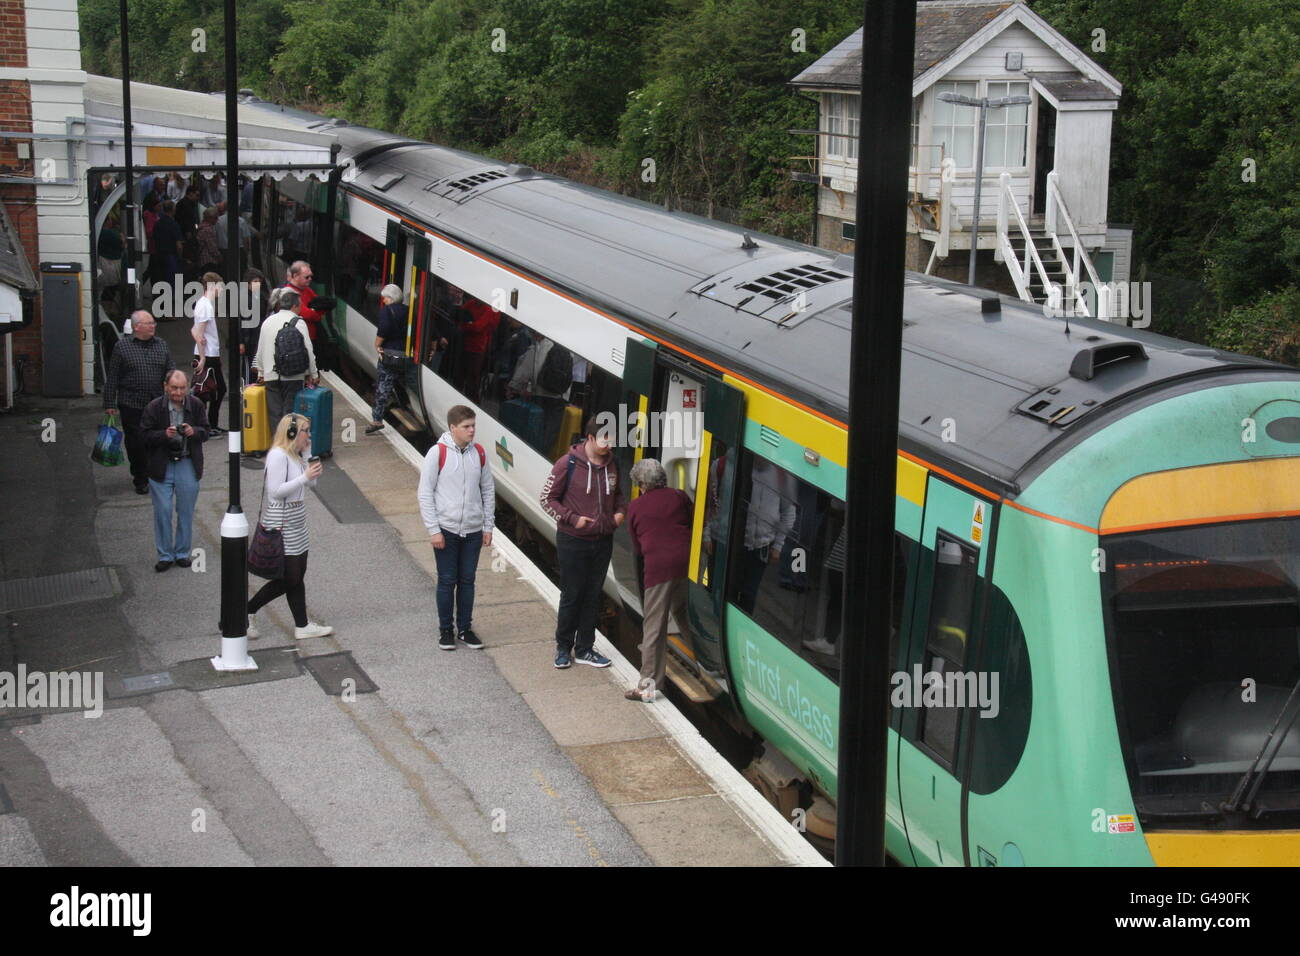 A SOUTHERN RAILWAY TRAIN STOPPED ON A RAILWAY STATION PLATFORM - Stock Image